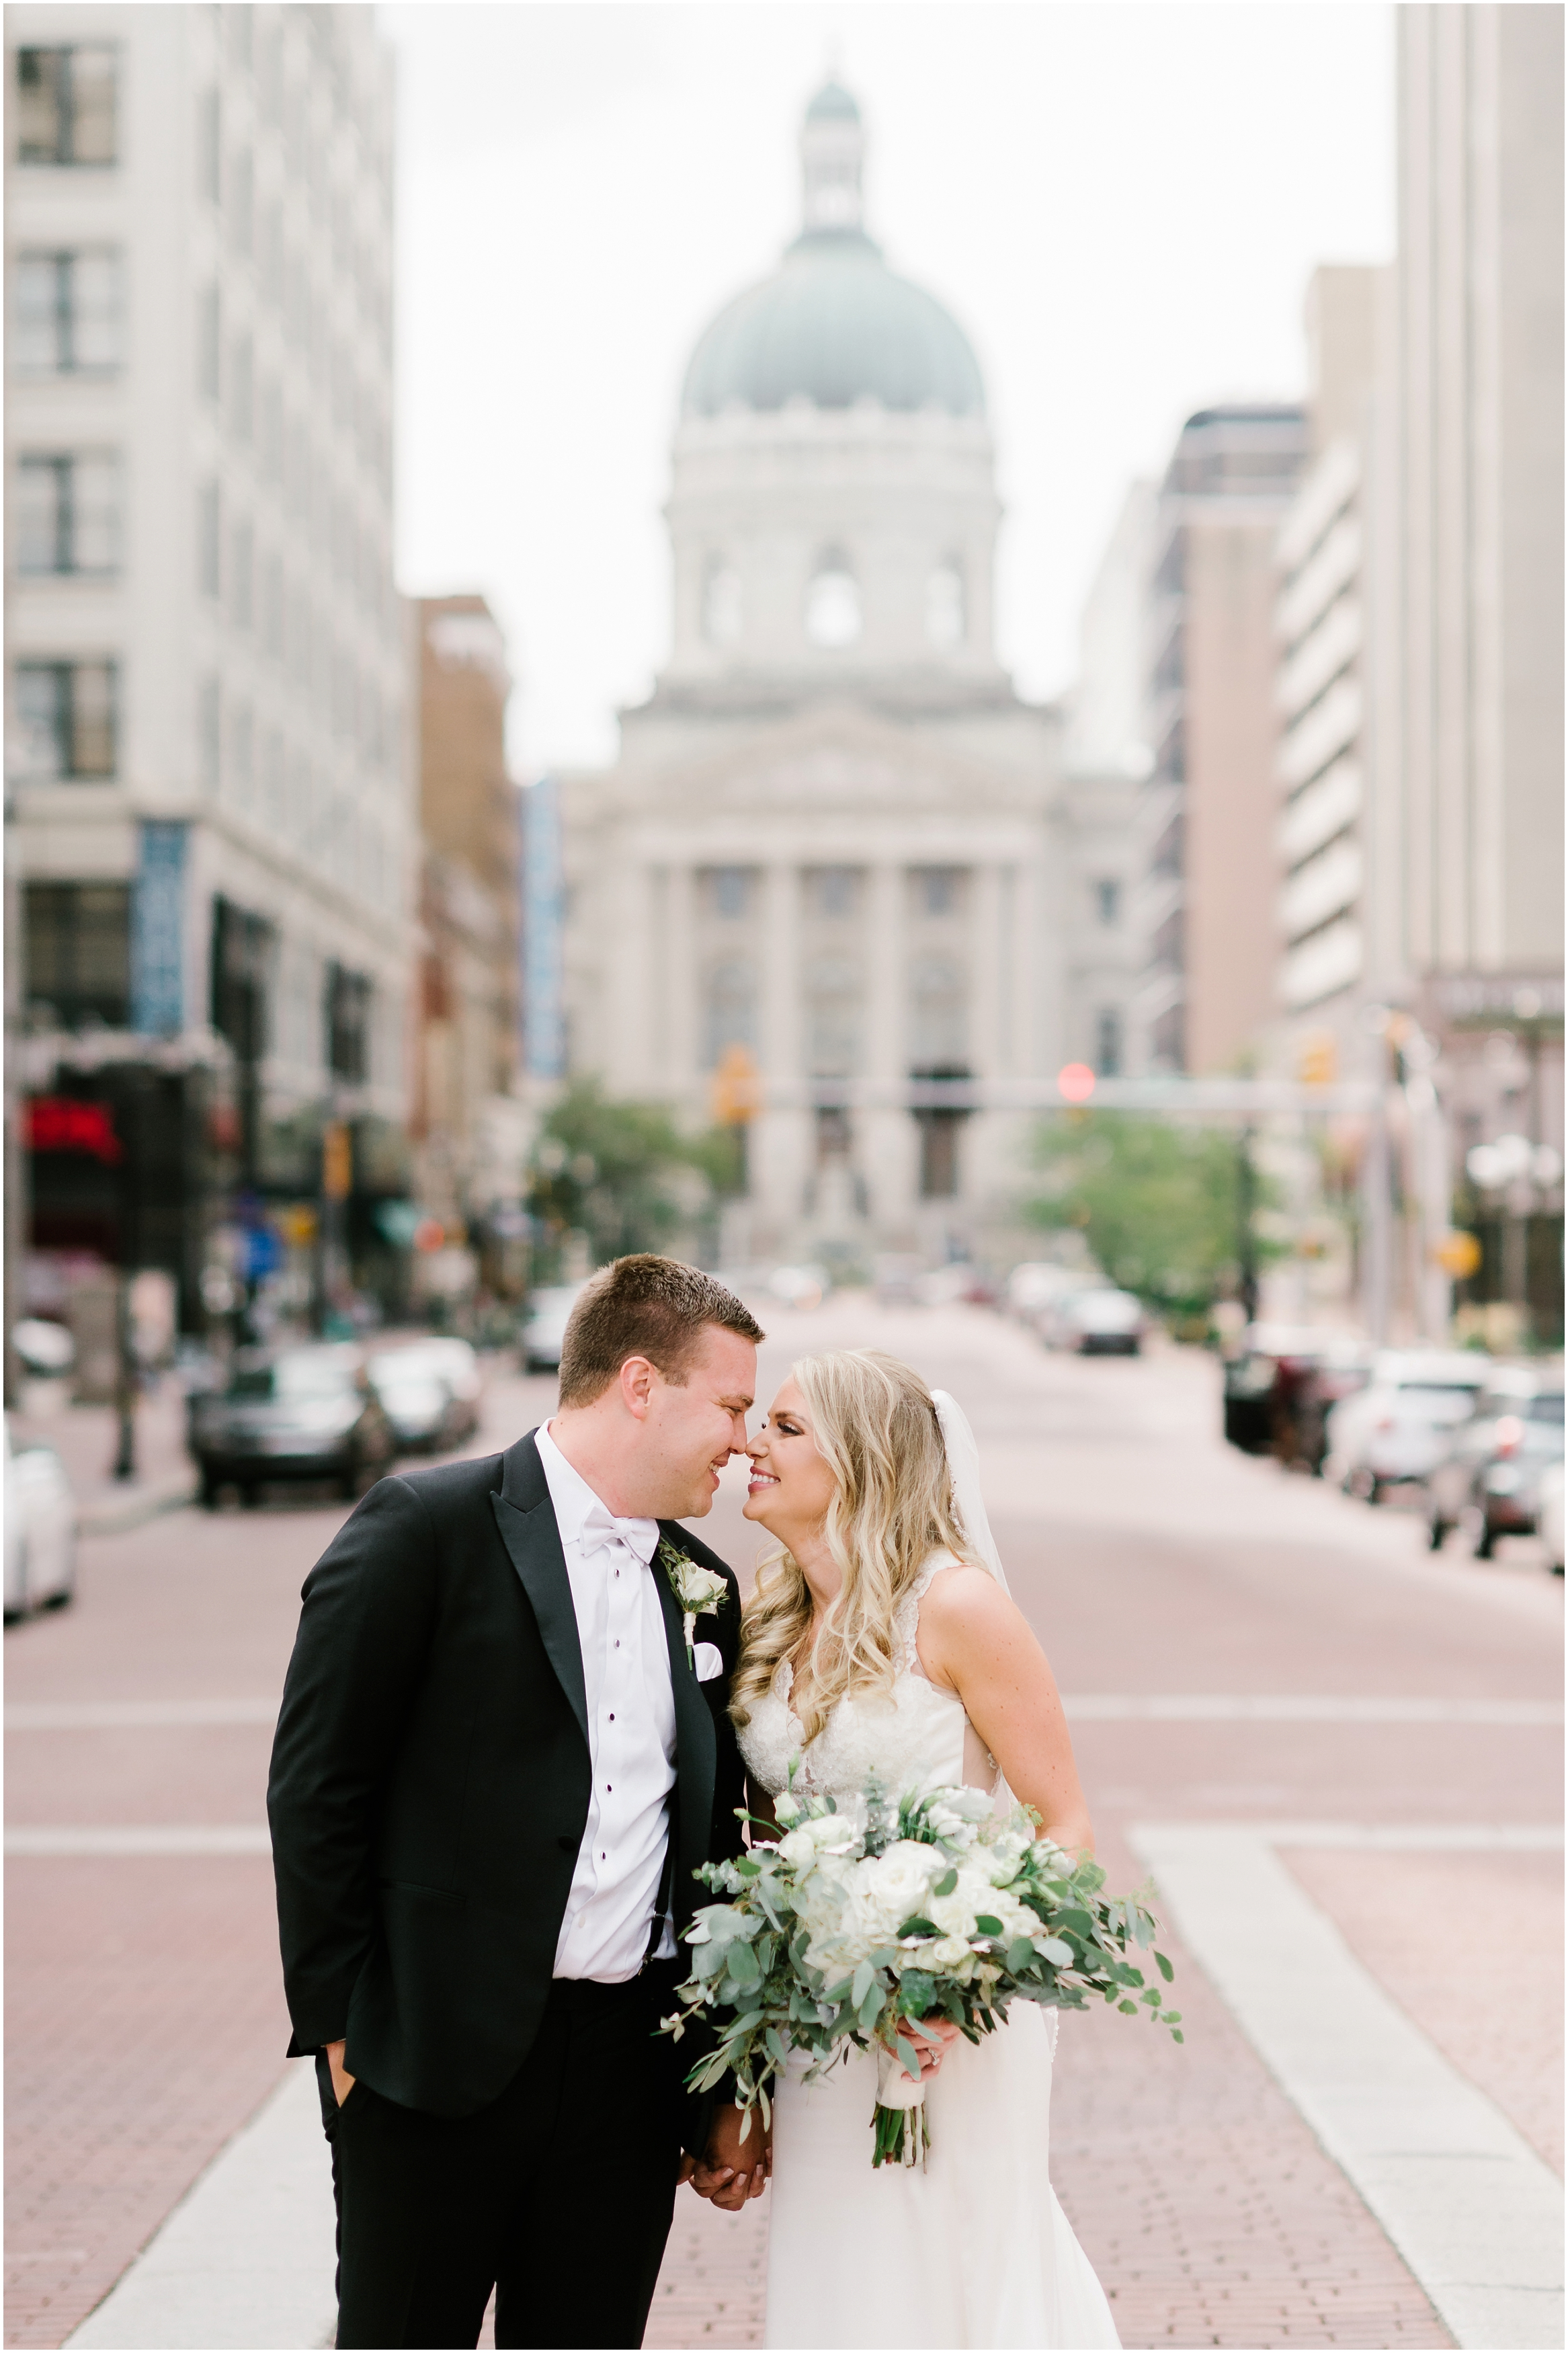 Rebecca_Shehorn_Photography_Indianapolis_Wedding_Photographer_8950.jpg